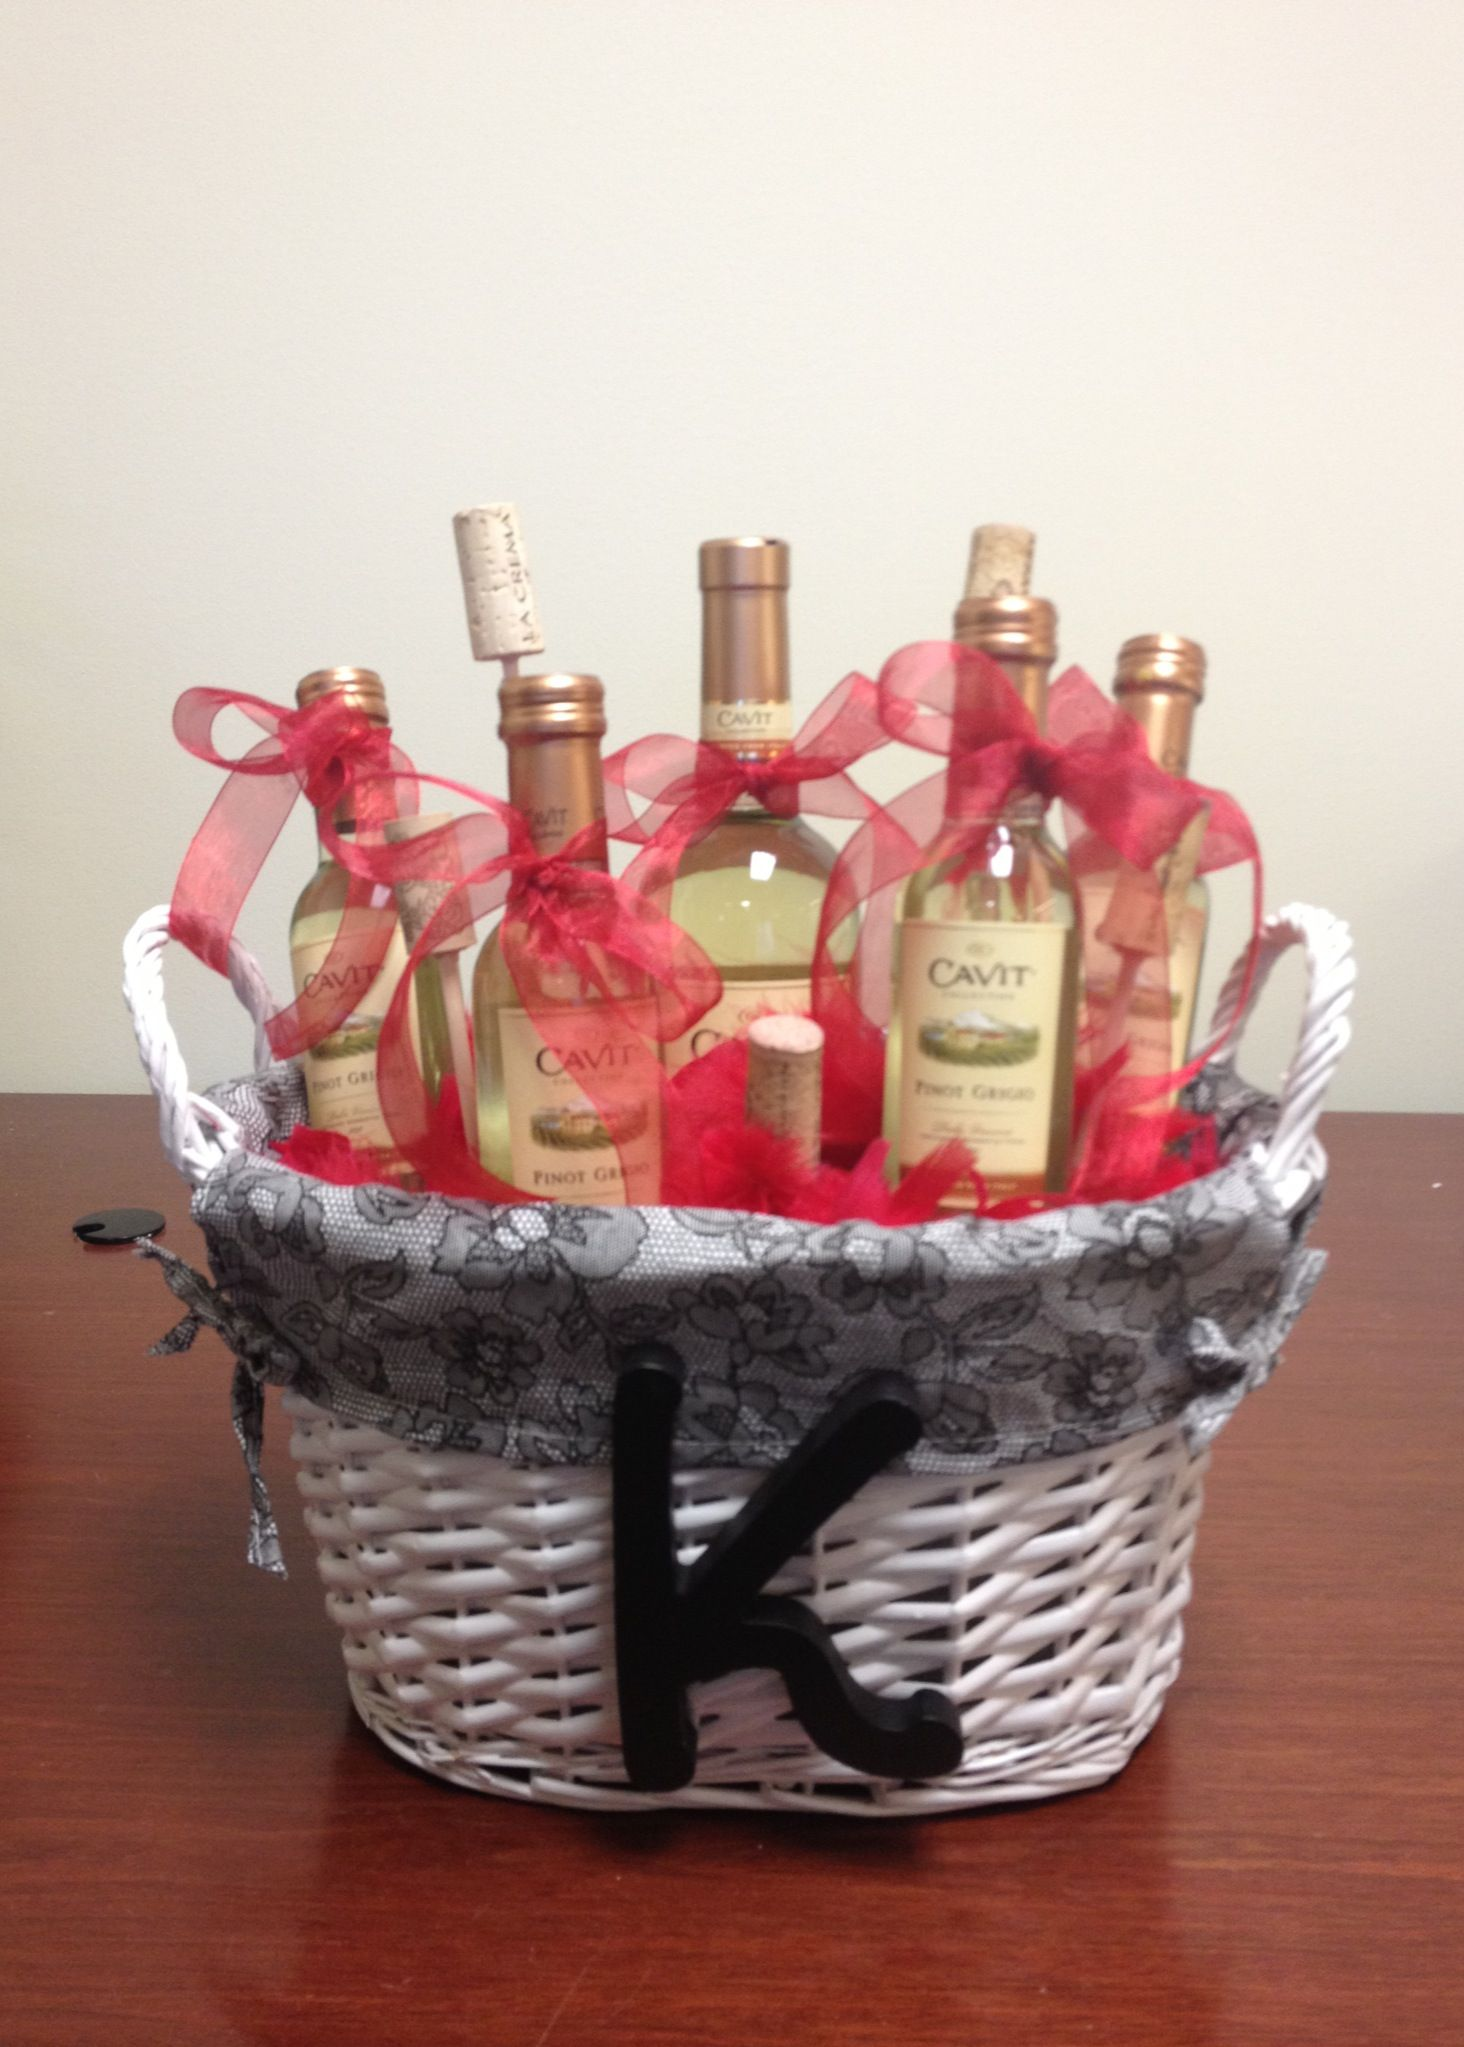 Wine gift basket. Made it for my friend! Diy wine gift